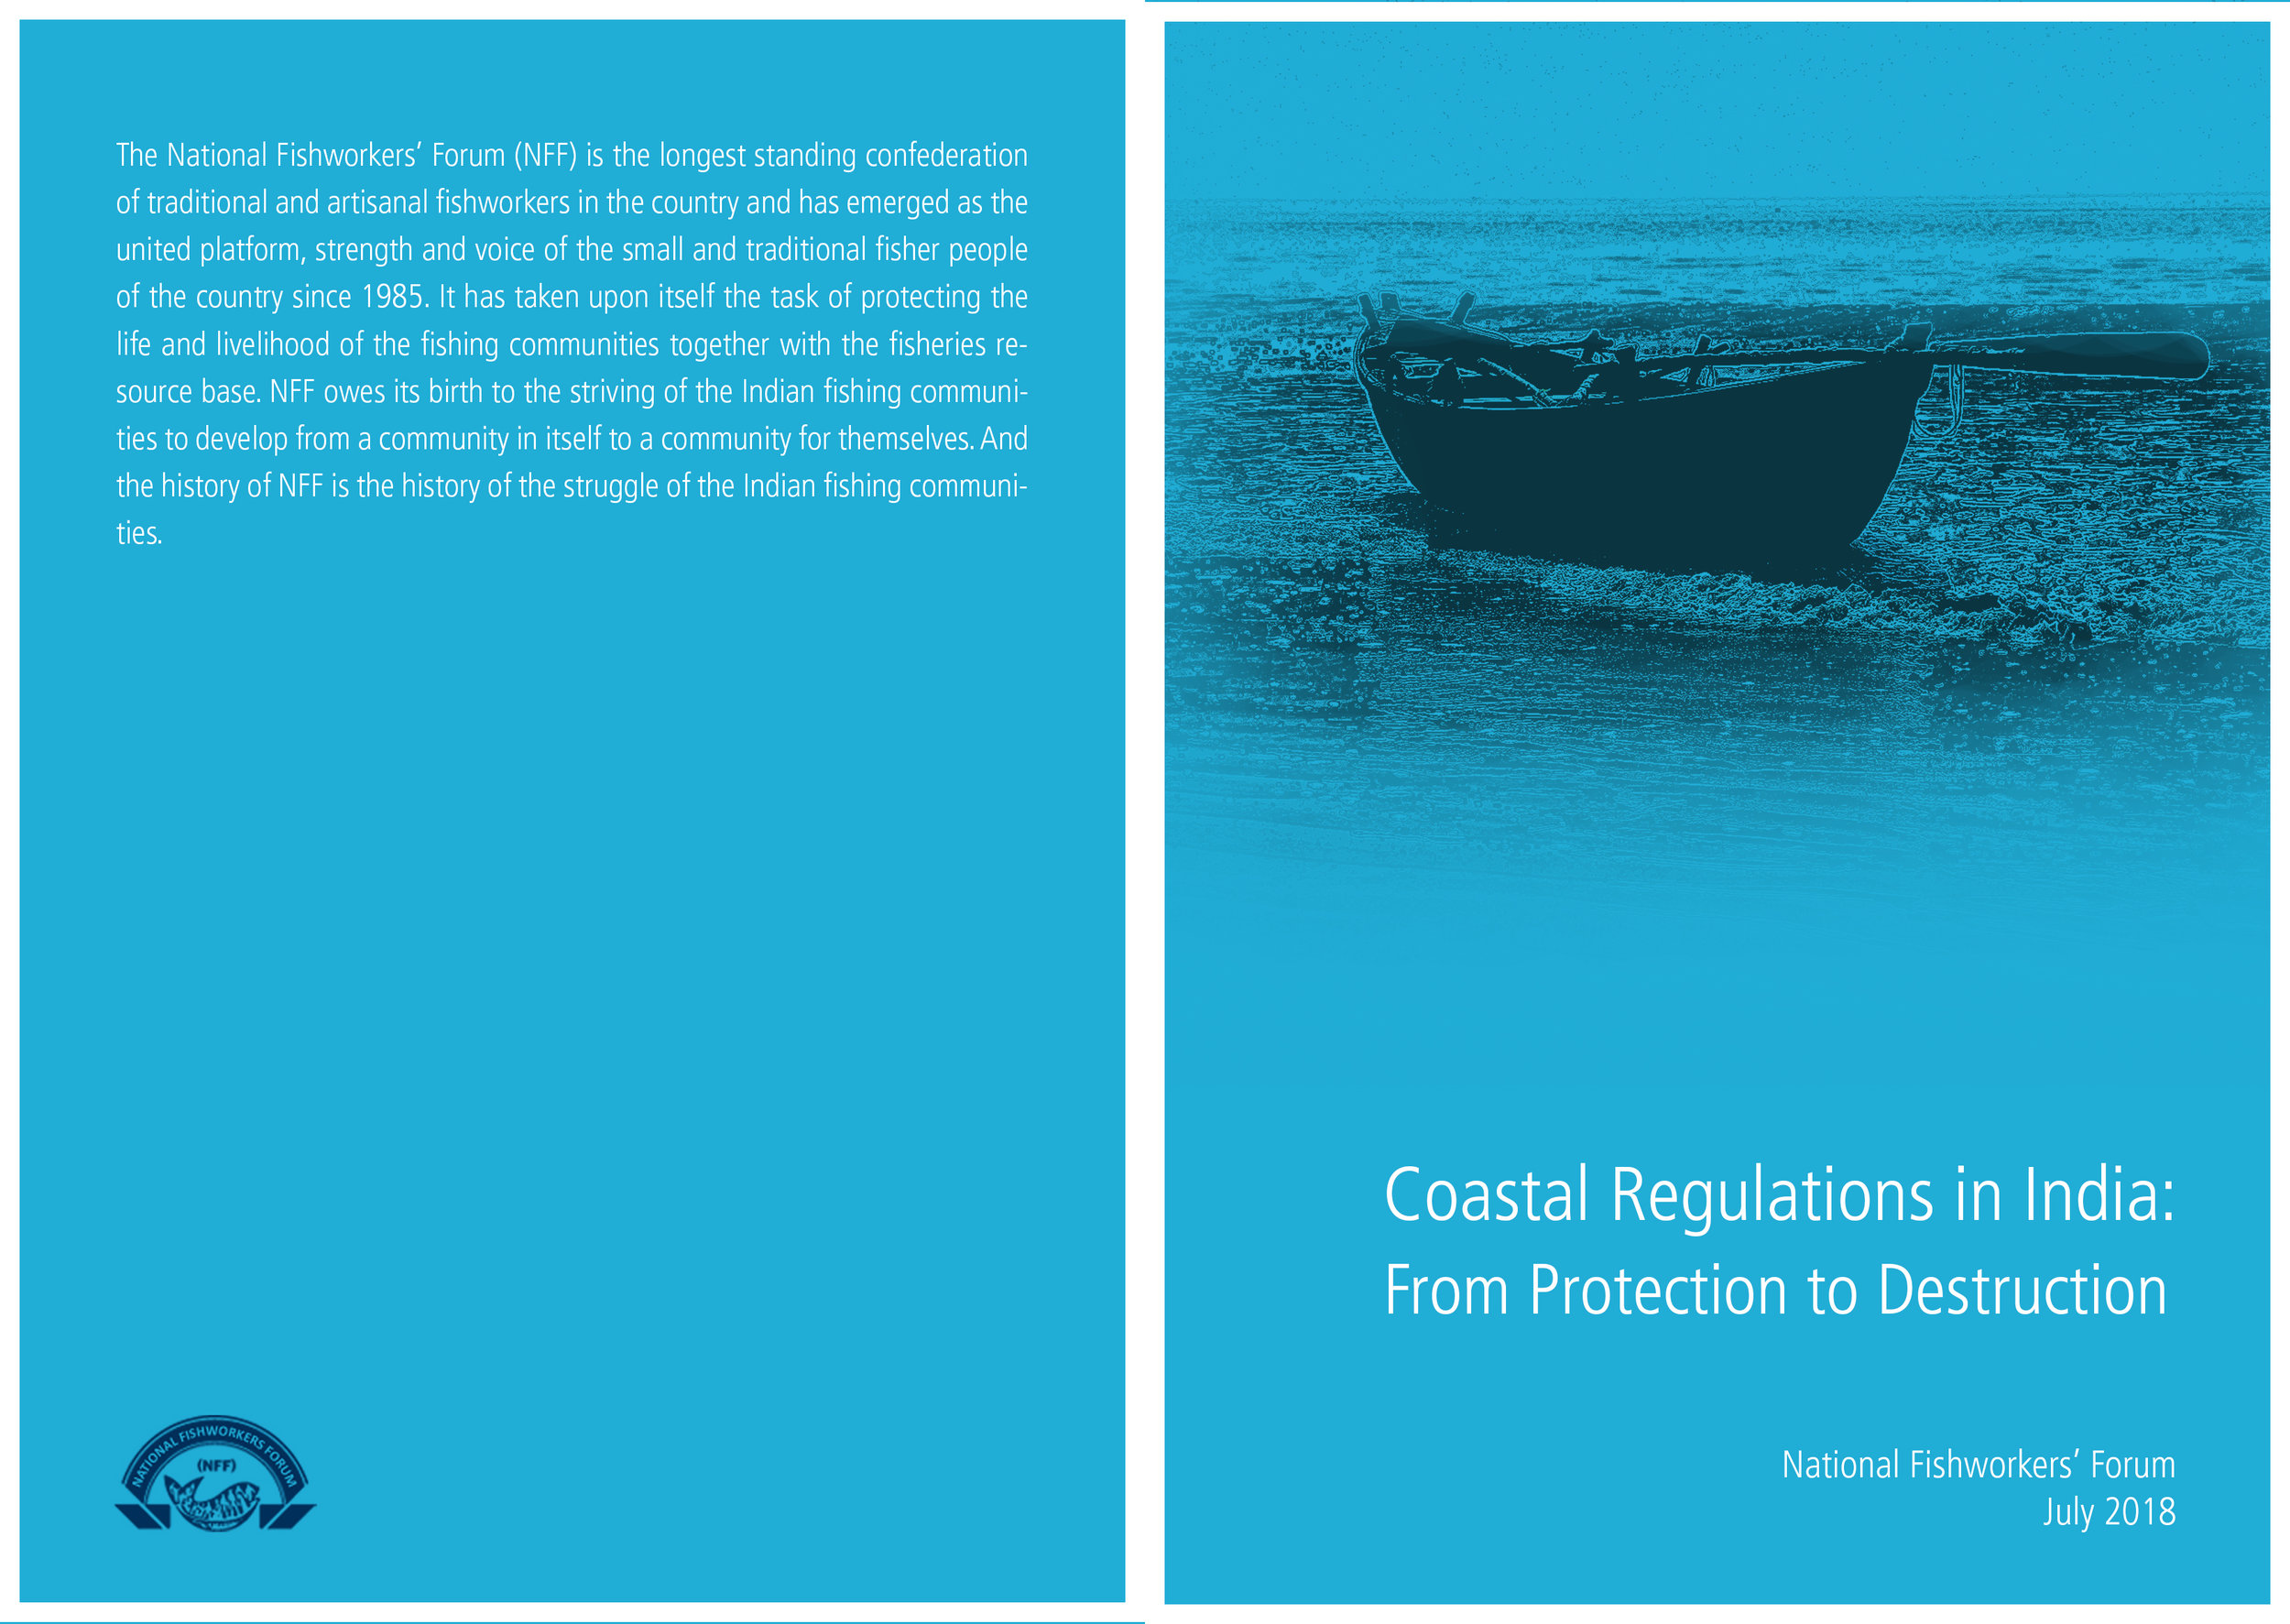 CRZ_MPs Interaction_Booklet_24July_Cover.jpg